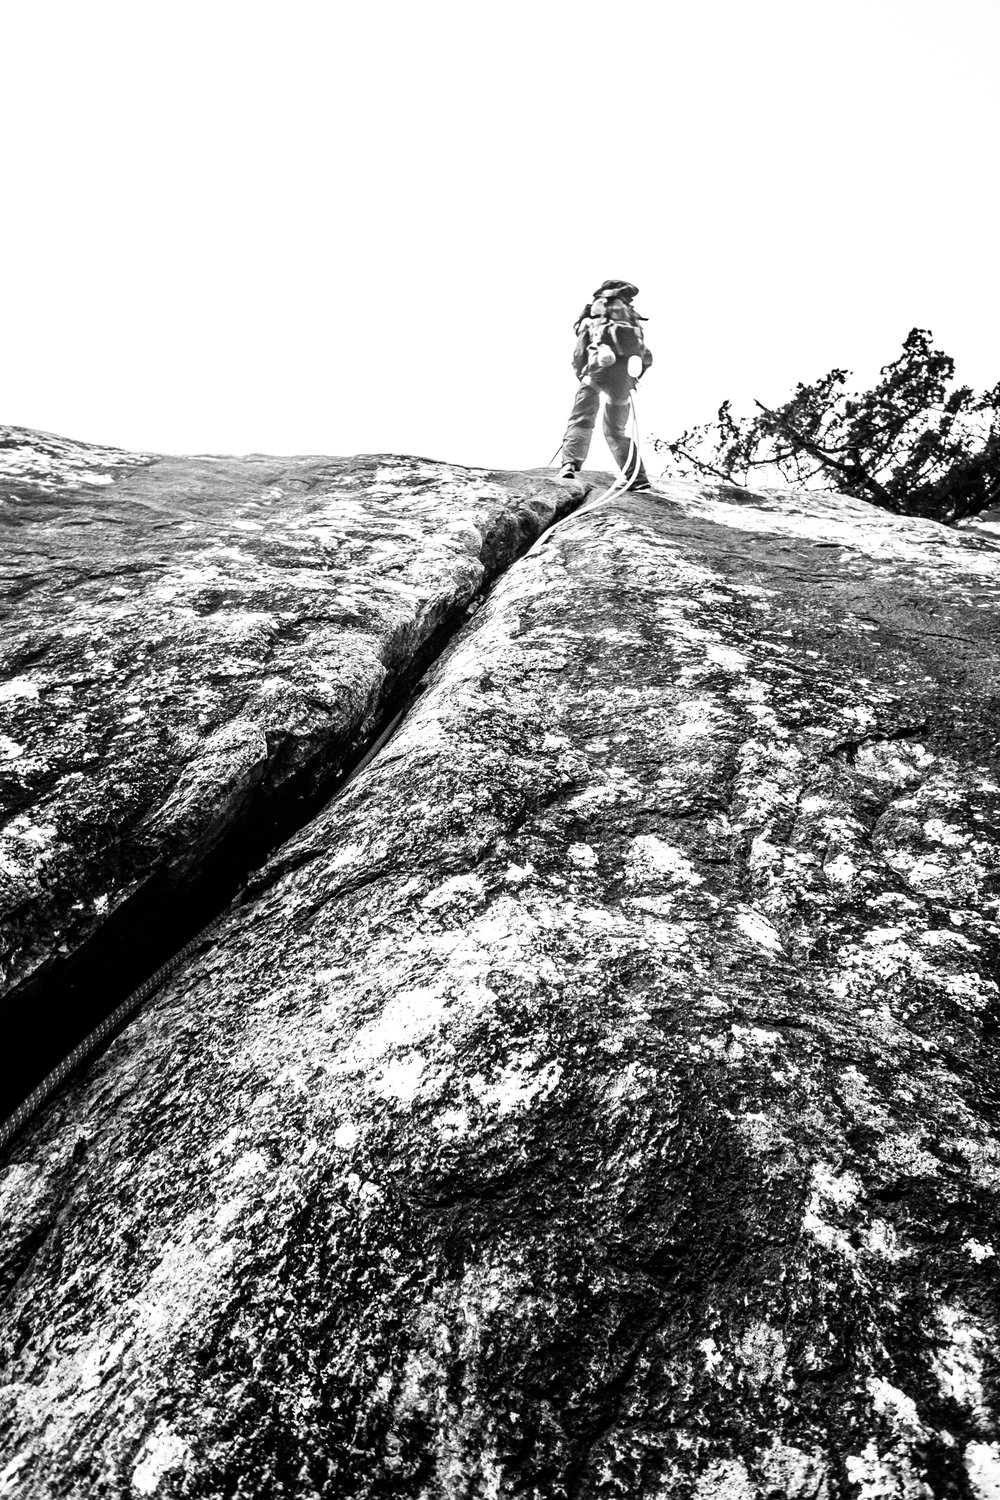 4-22-17 Rock Climbing black & white-6.jpg